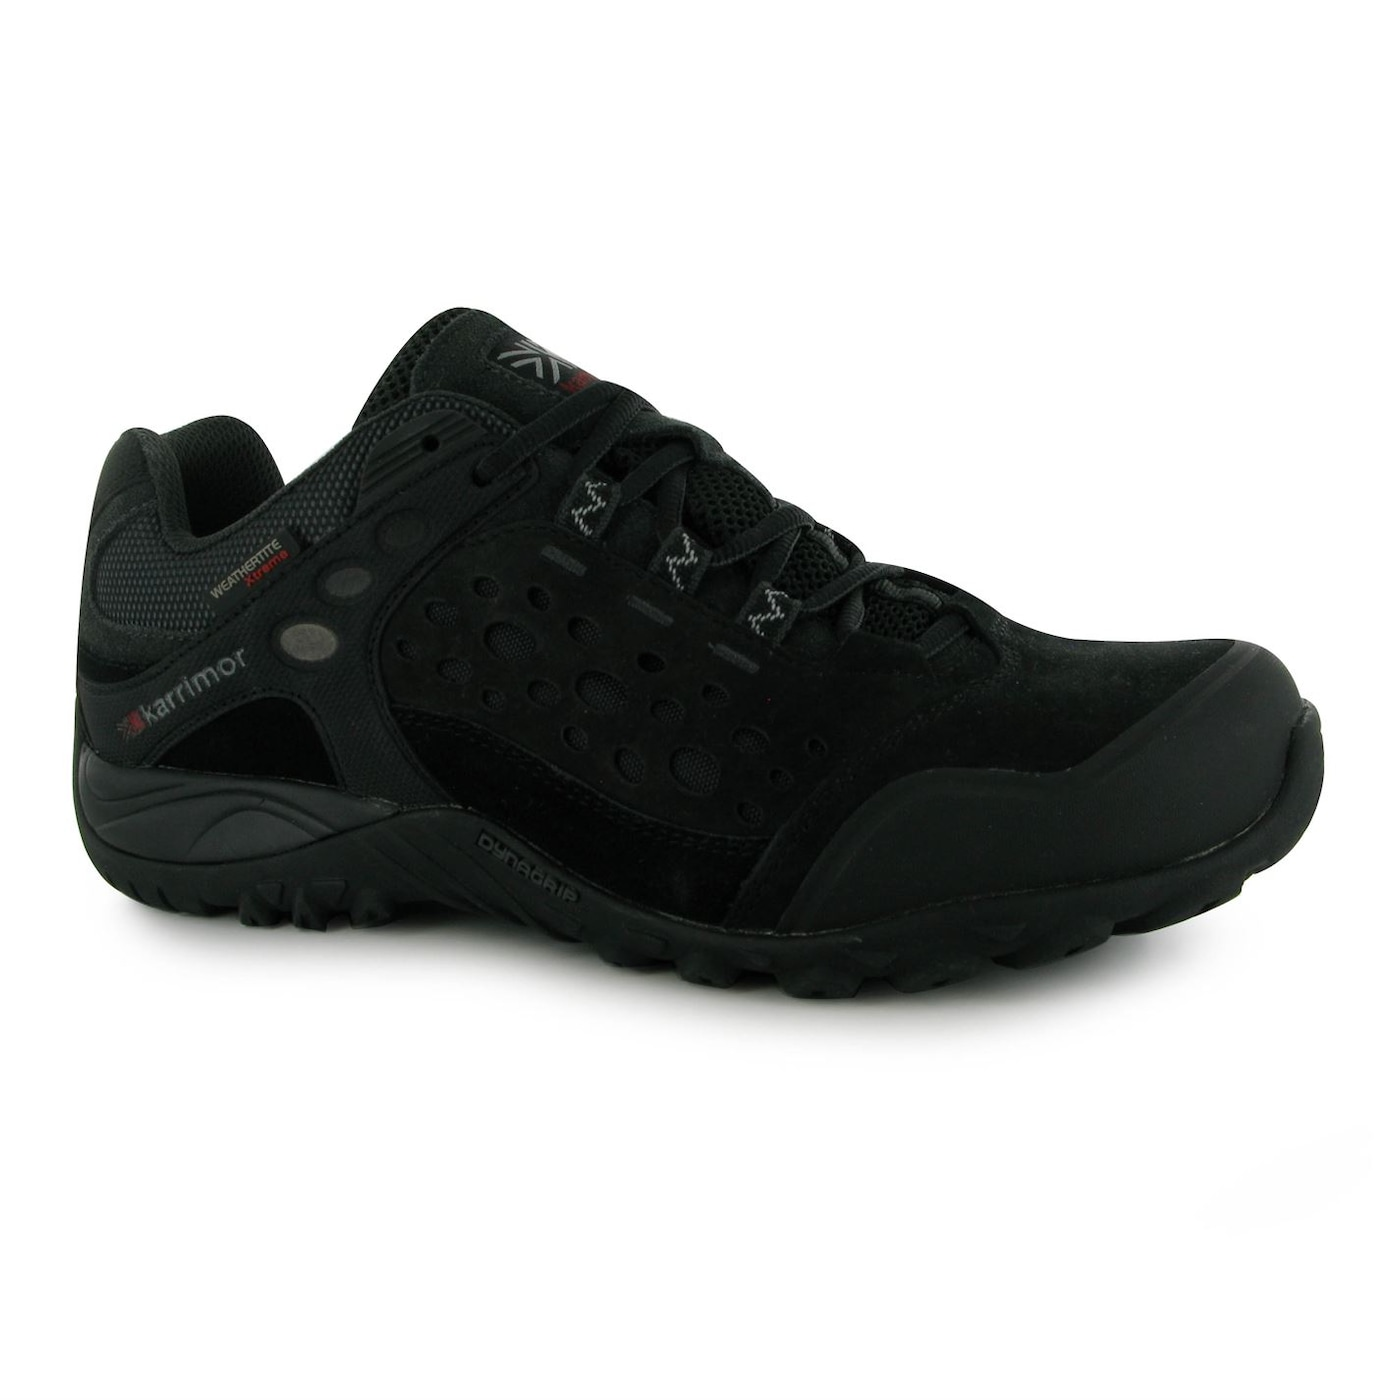 Karrimor Corrie Mens Walking Shoes